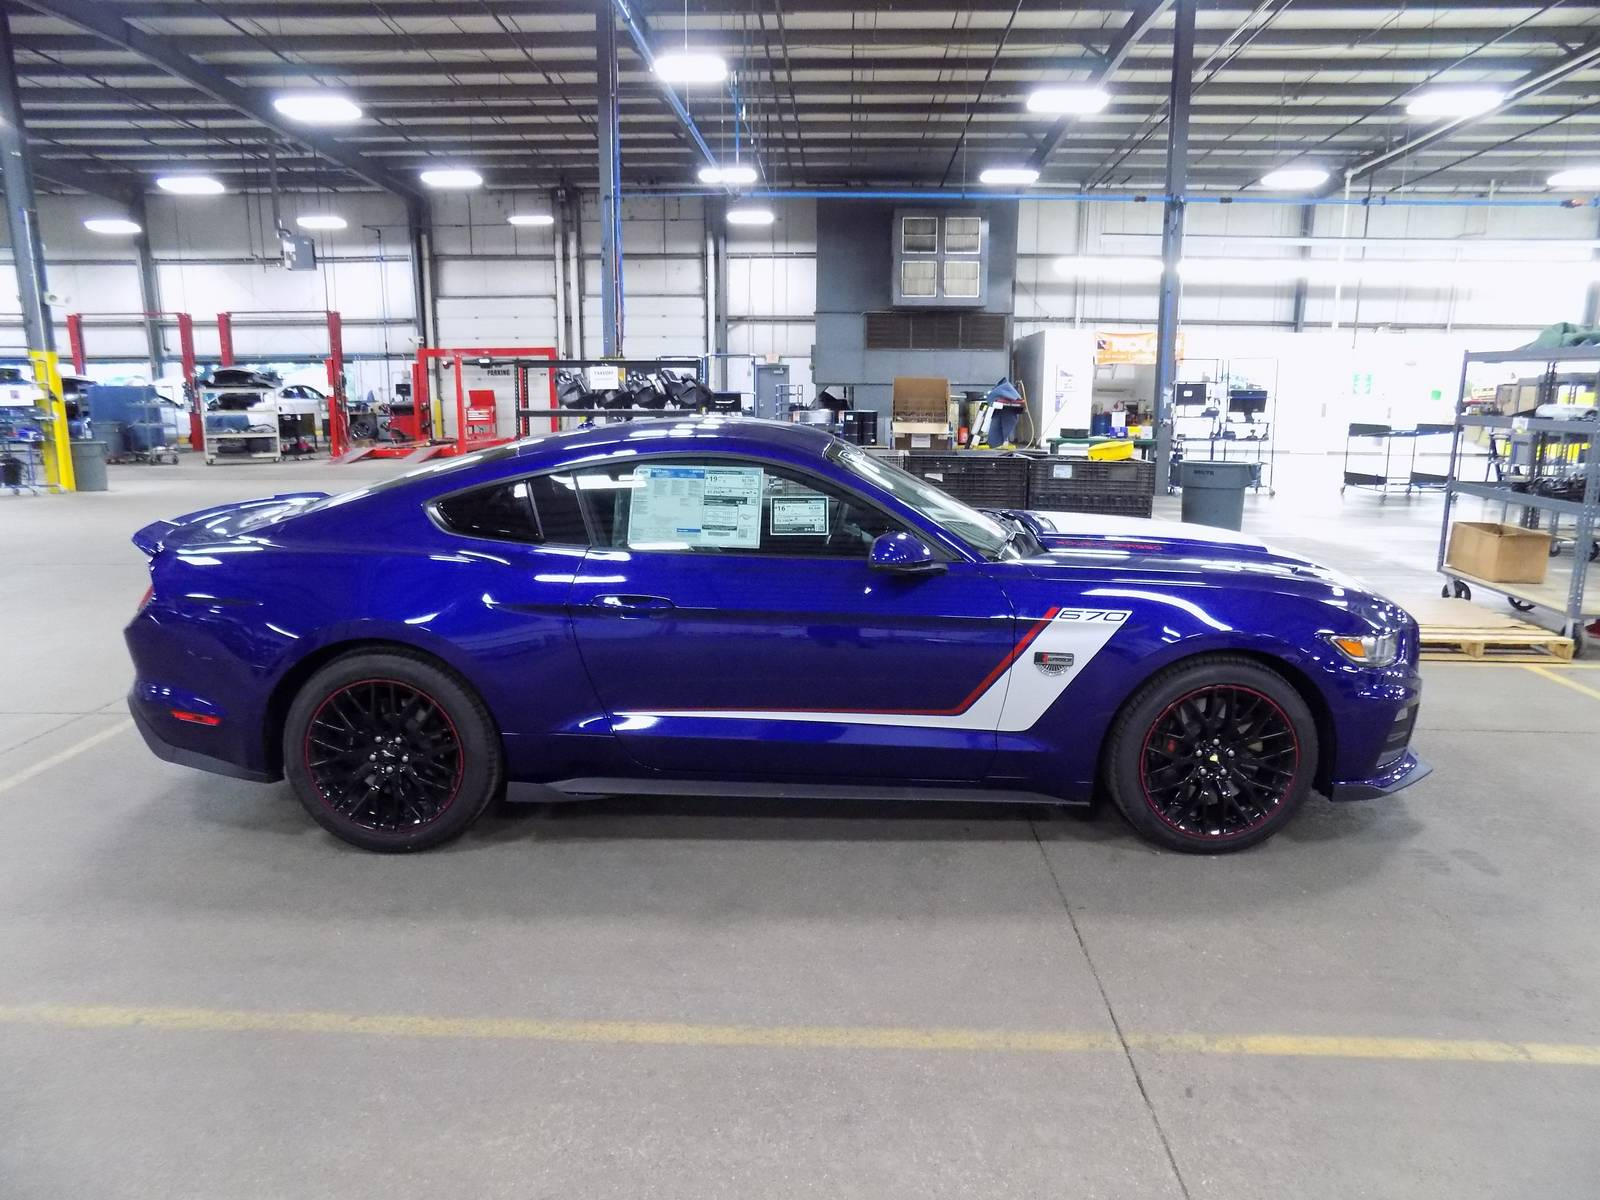 2016 roush warrior ford mustang gets new look gtspirit